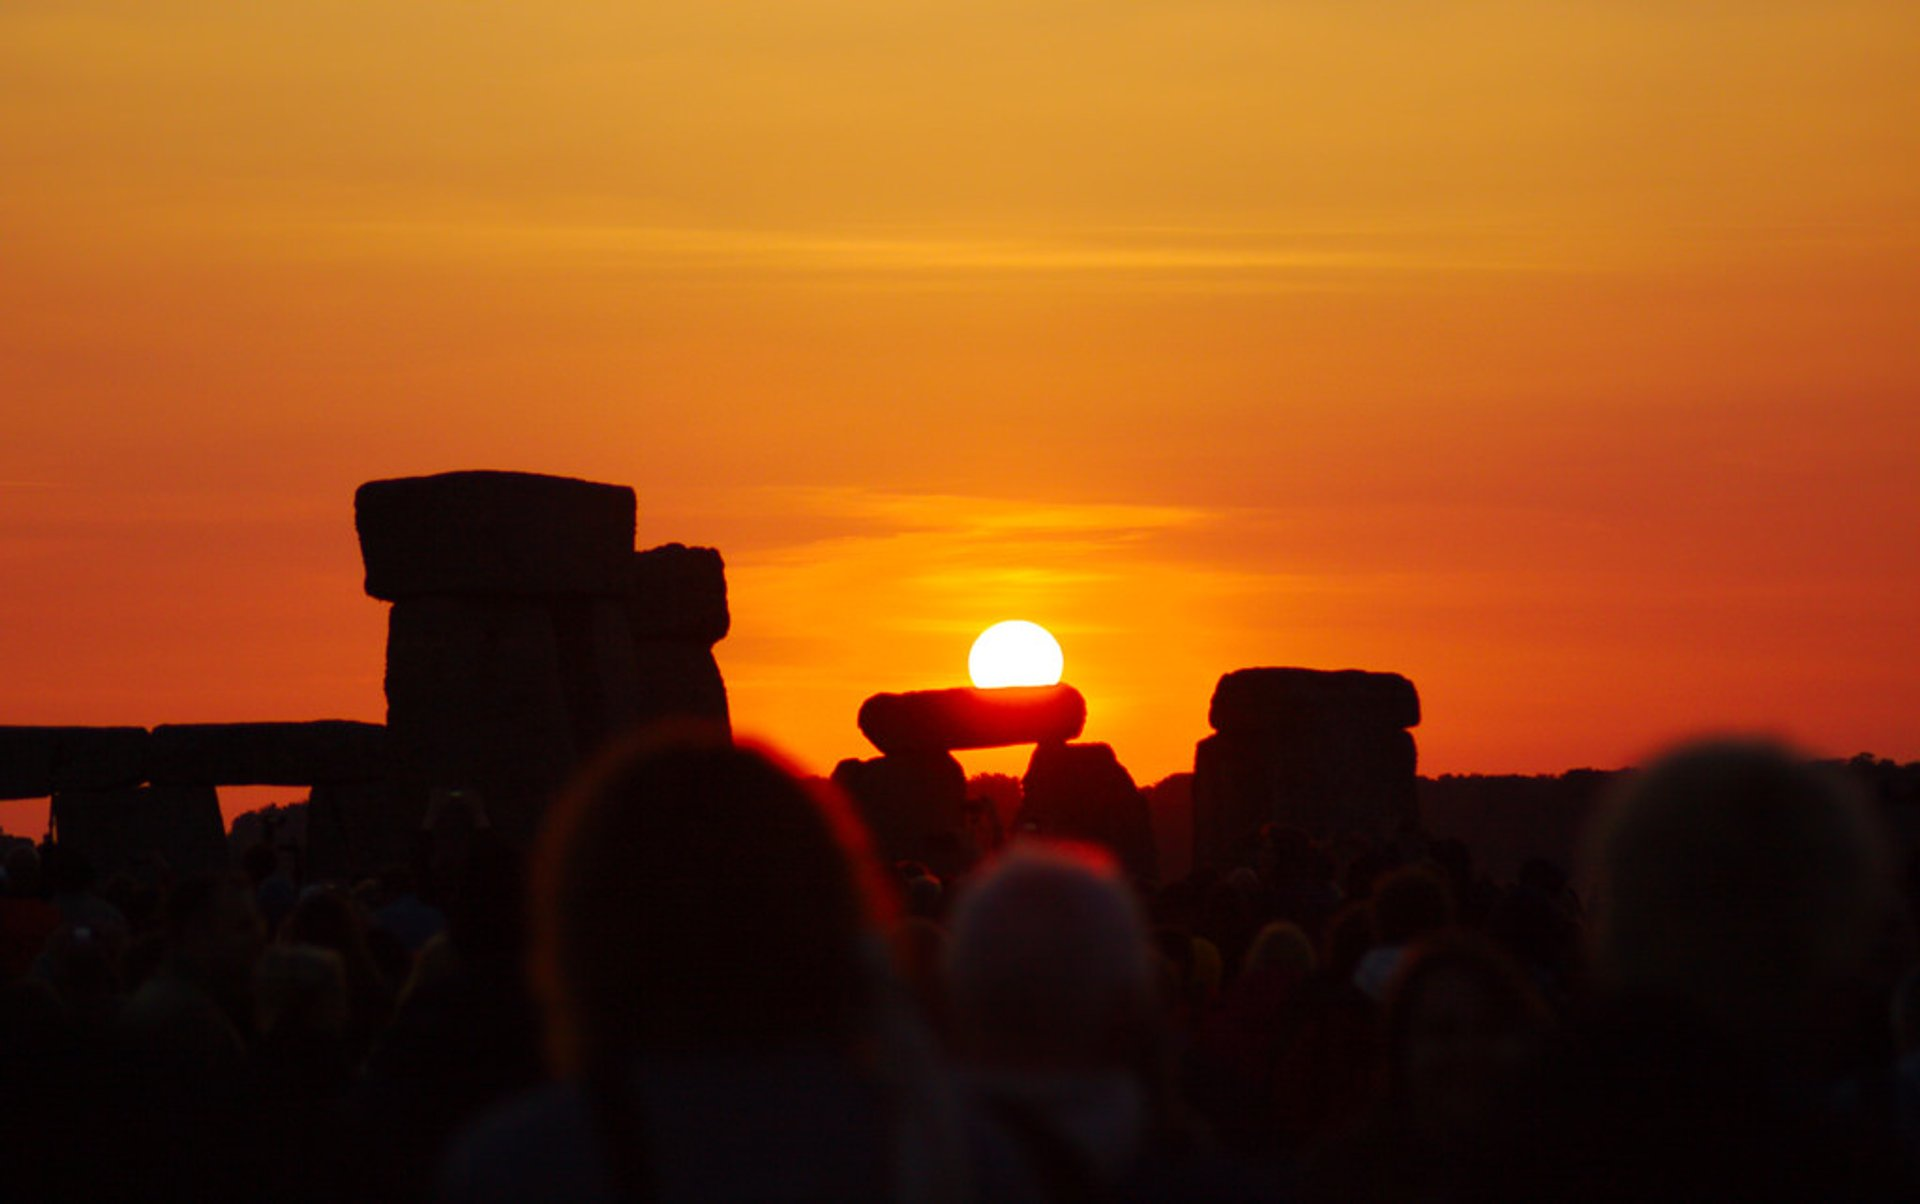 Stonehenge: Spring Equinox, Summer Solstice, Autumn Equinox, and Winter Solstice in England 2020 - Best Time